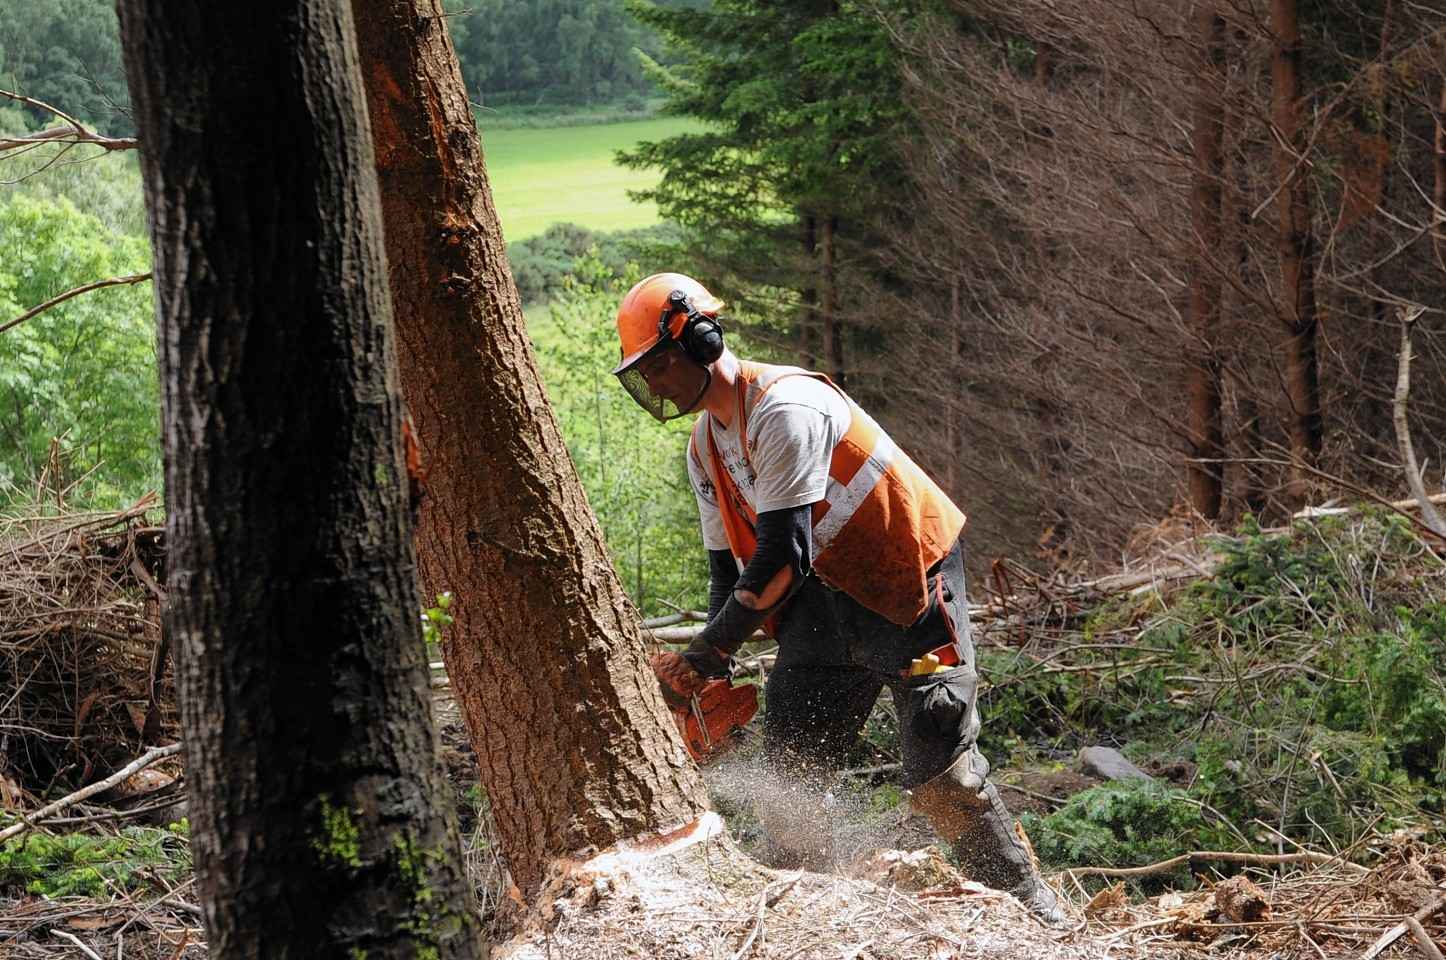 Almost £80m worth of forestry was sold in the UK last year